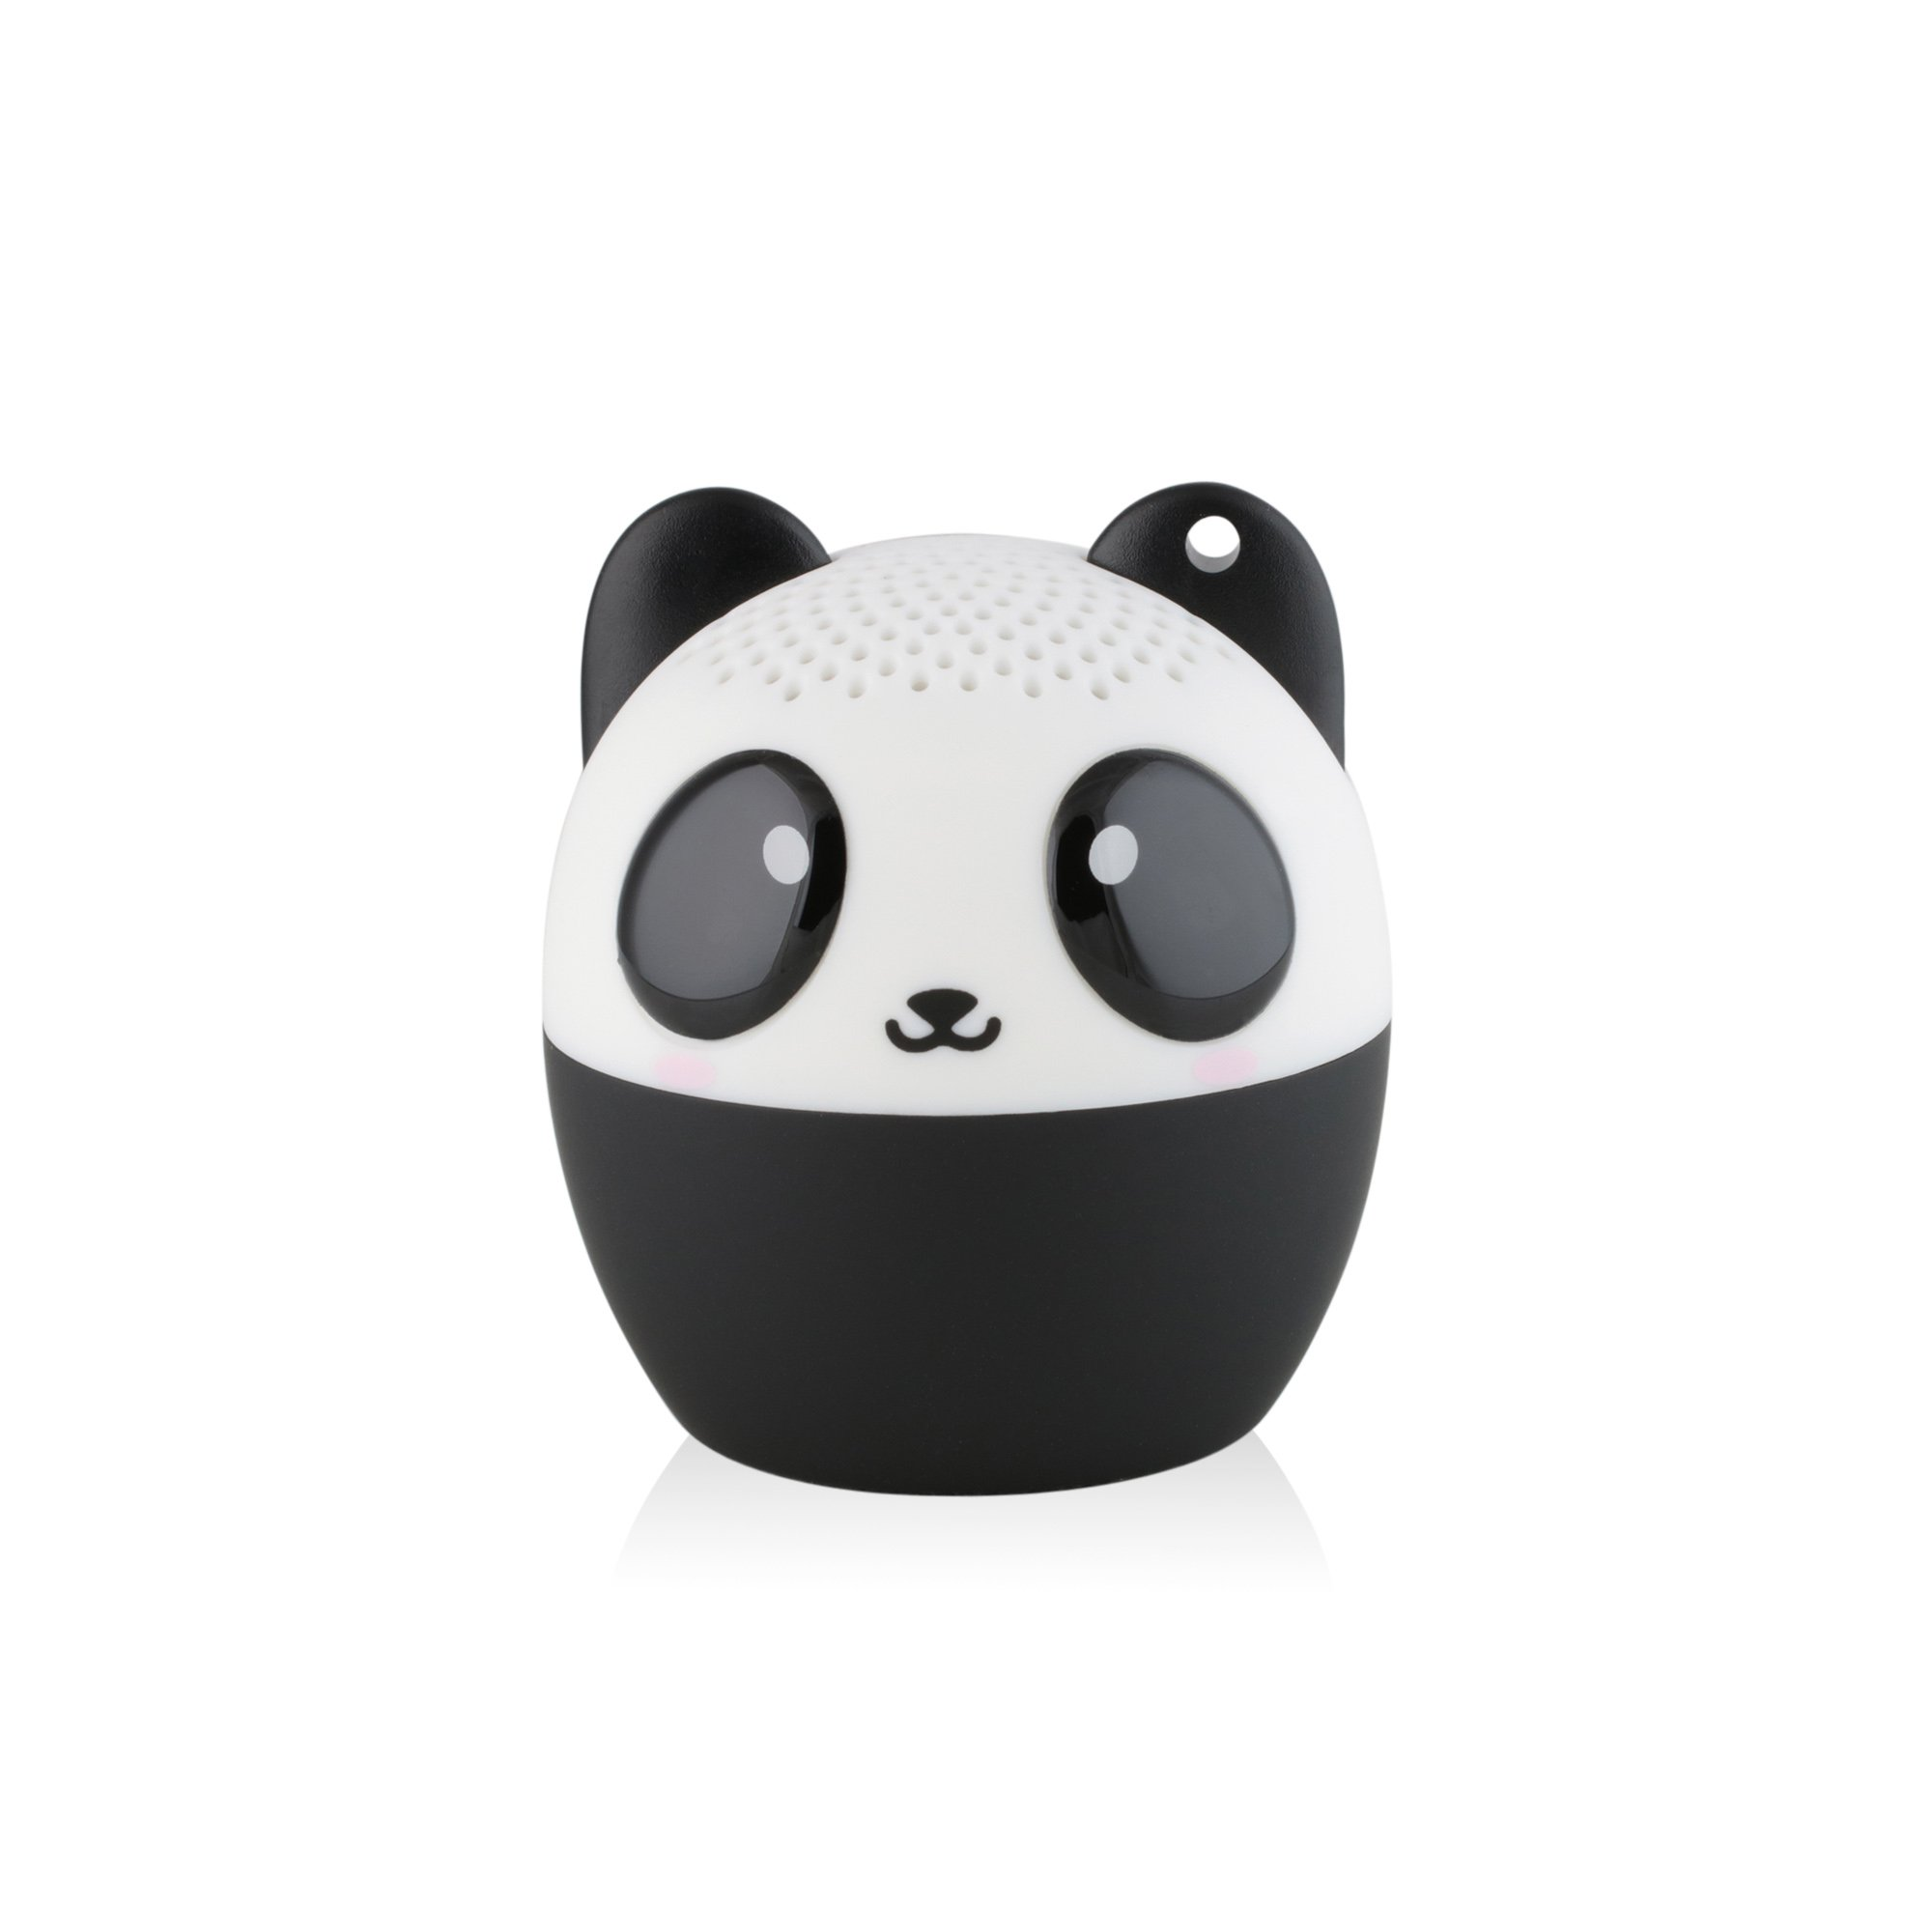 My Audio Pet (Gen 1 Mini Bluetooth Animal Wireless Speaker with Powerful Rich Room-filling Sound - 3W audio driver - Remote Selfie Function - for iPhone/iPad/iPod/Samsung/HTC/Tablets - PANDAmonium